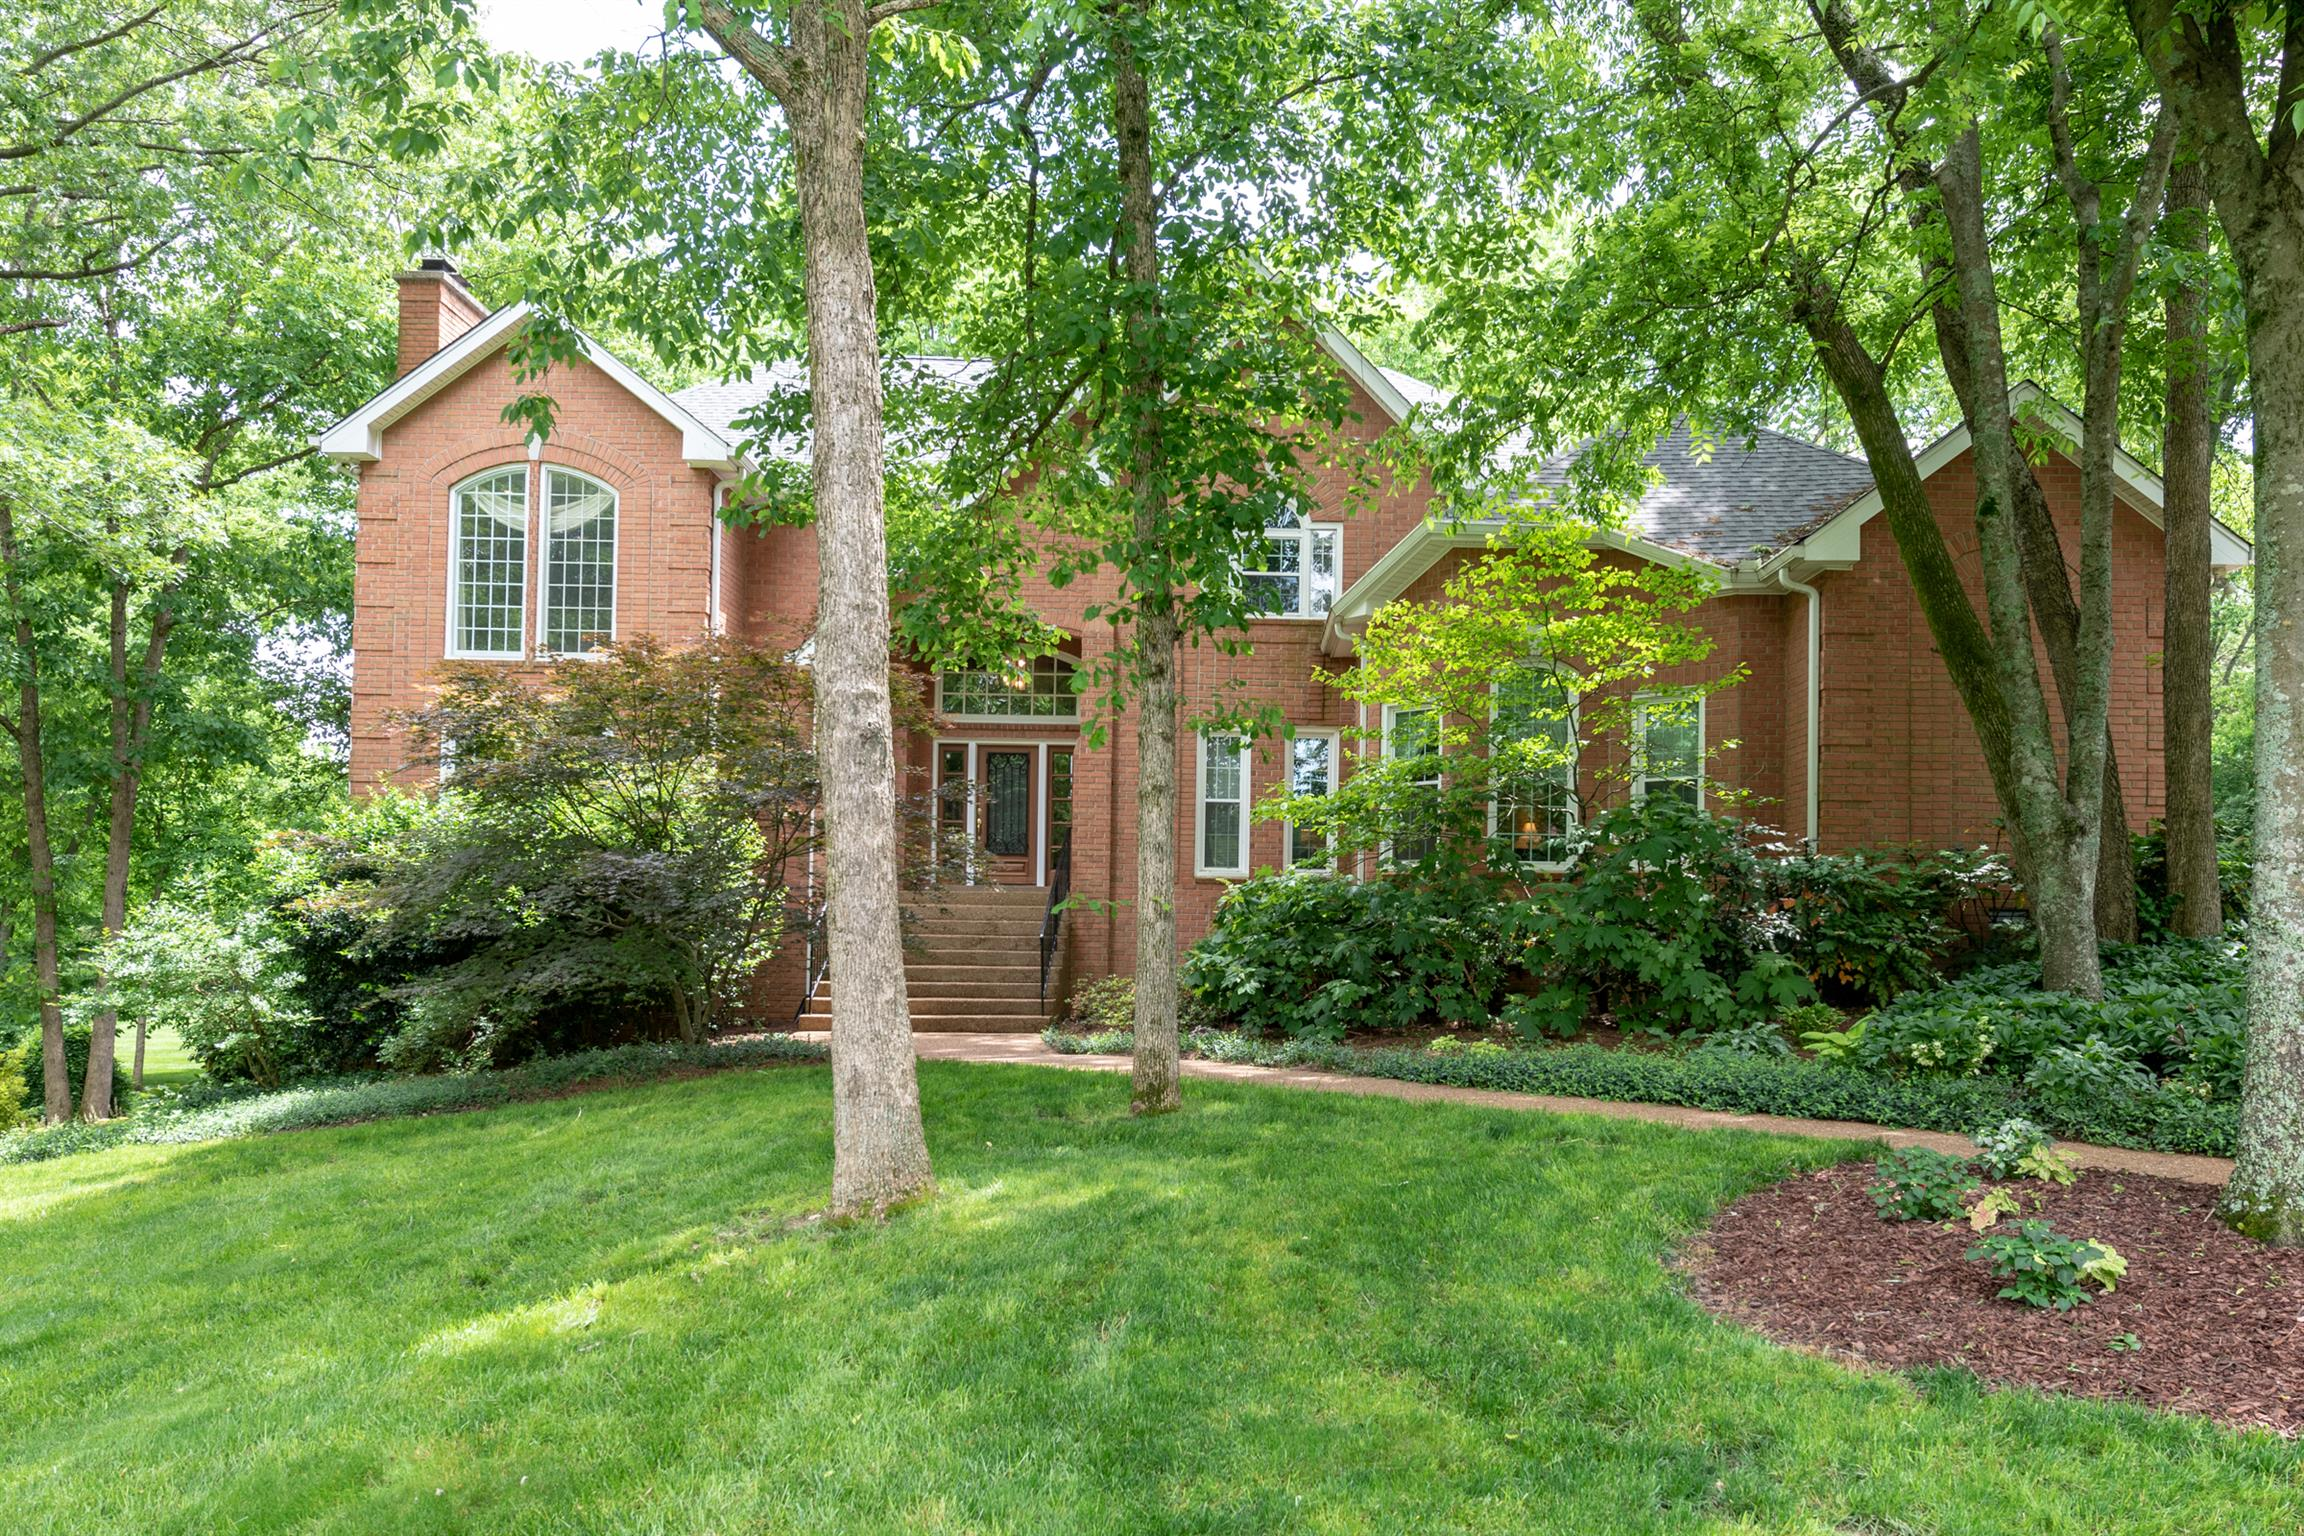 1014 Doveland Ct, Brentwood, TN 37027 - Brentwood, TN real estate listing